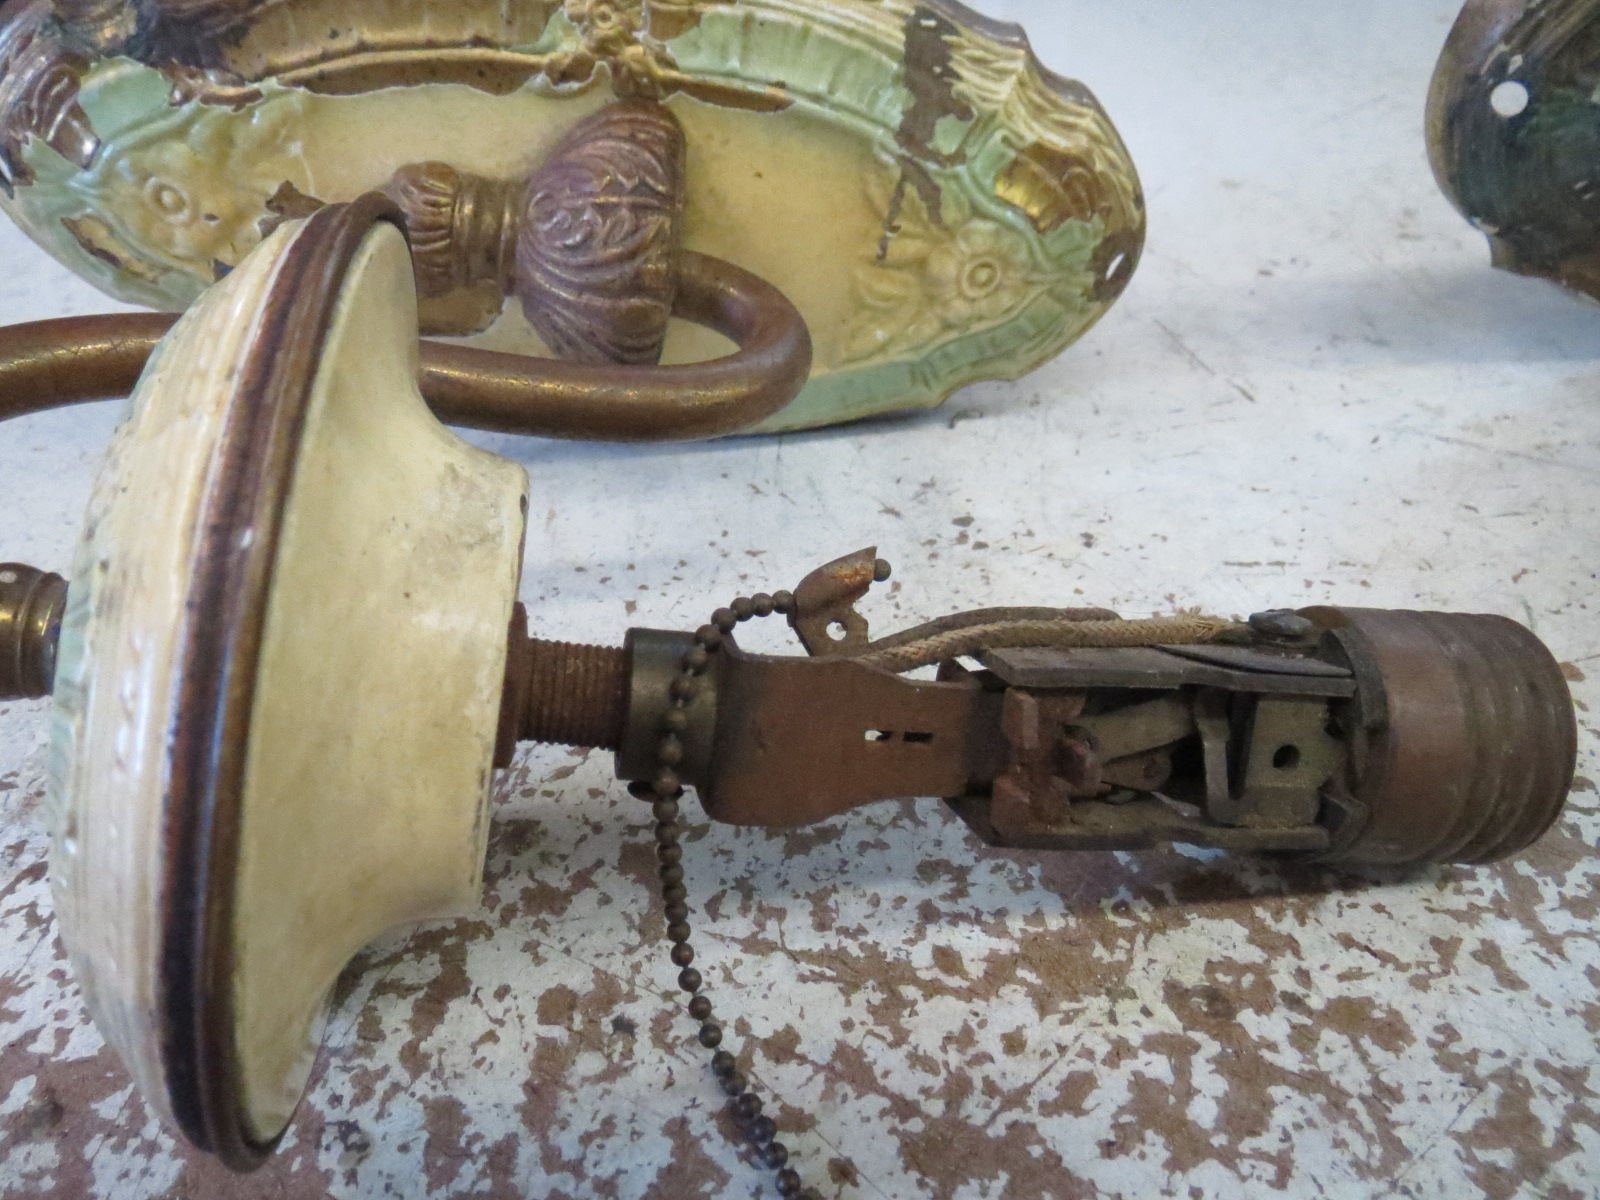 Lamp Parts and Repair | Lamp Doctor: Repaired Antique Wall ... on Wall Sconce Parts id=24796